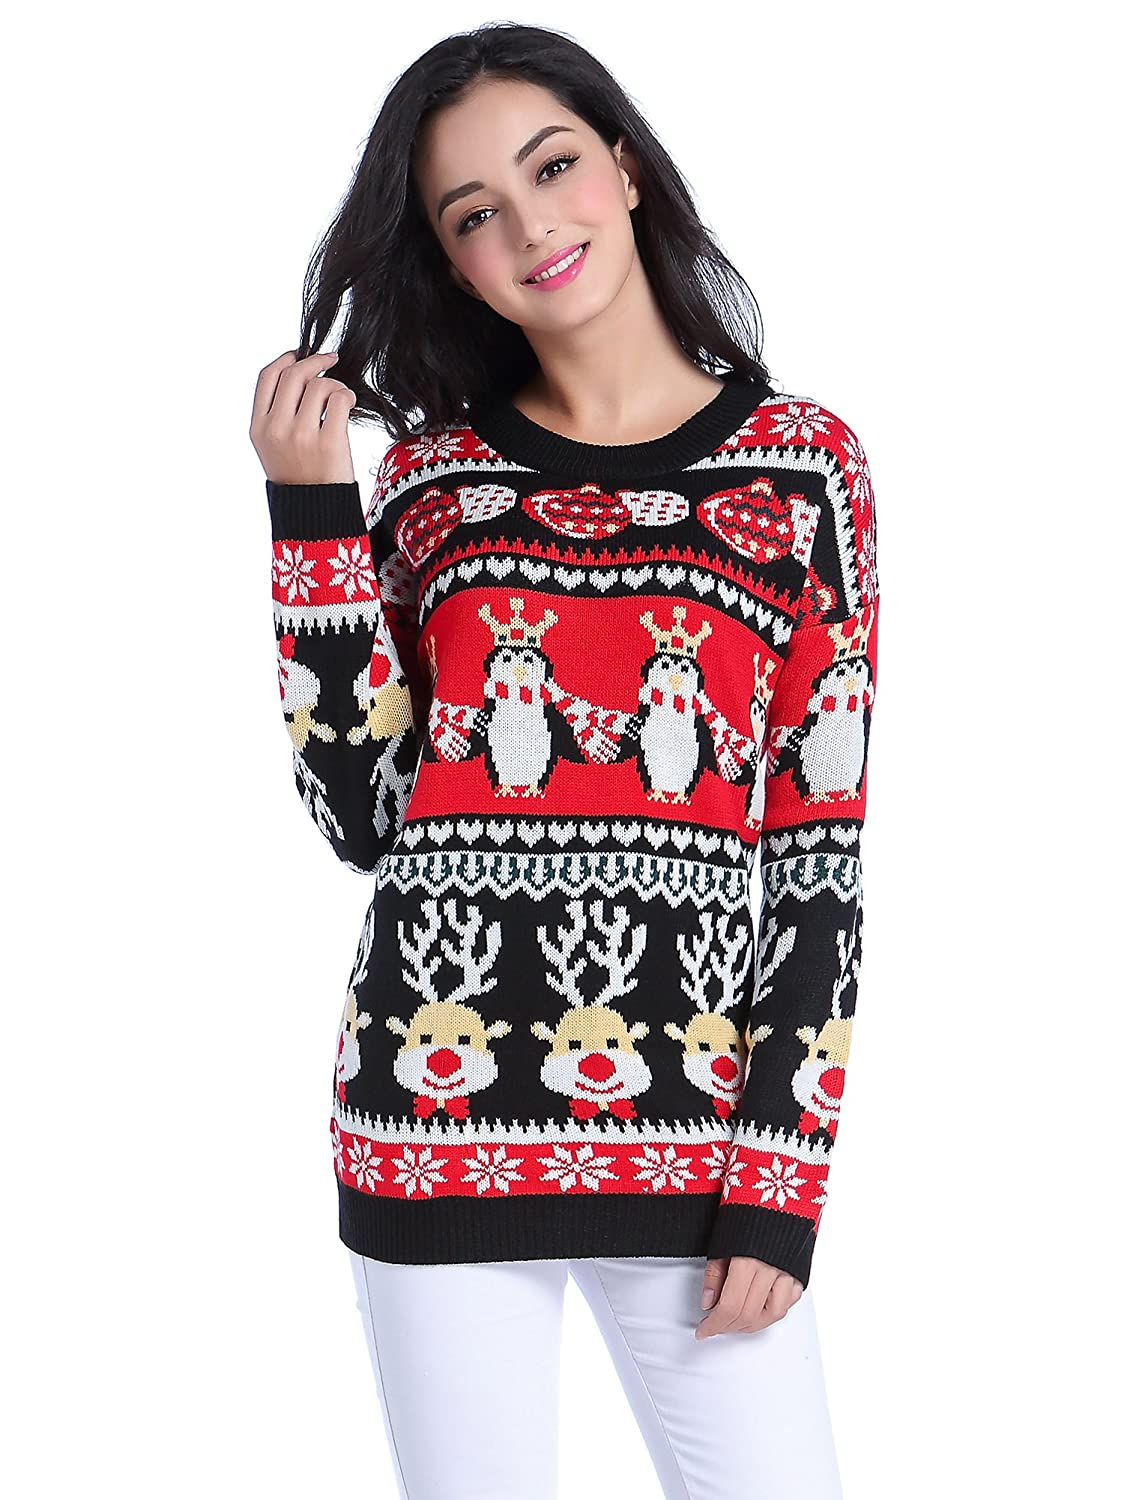 v28 Ugly Christmas Sweater, Women Girl Long Vintage Knit Xmas Warm ...